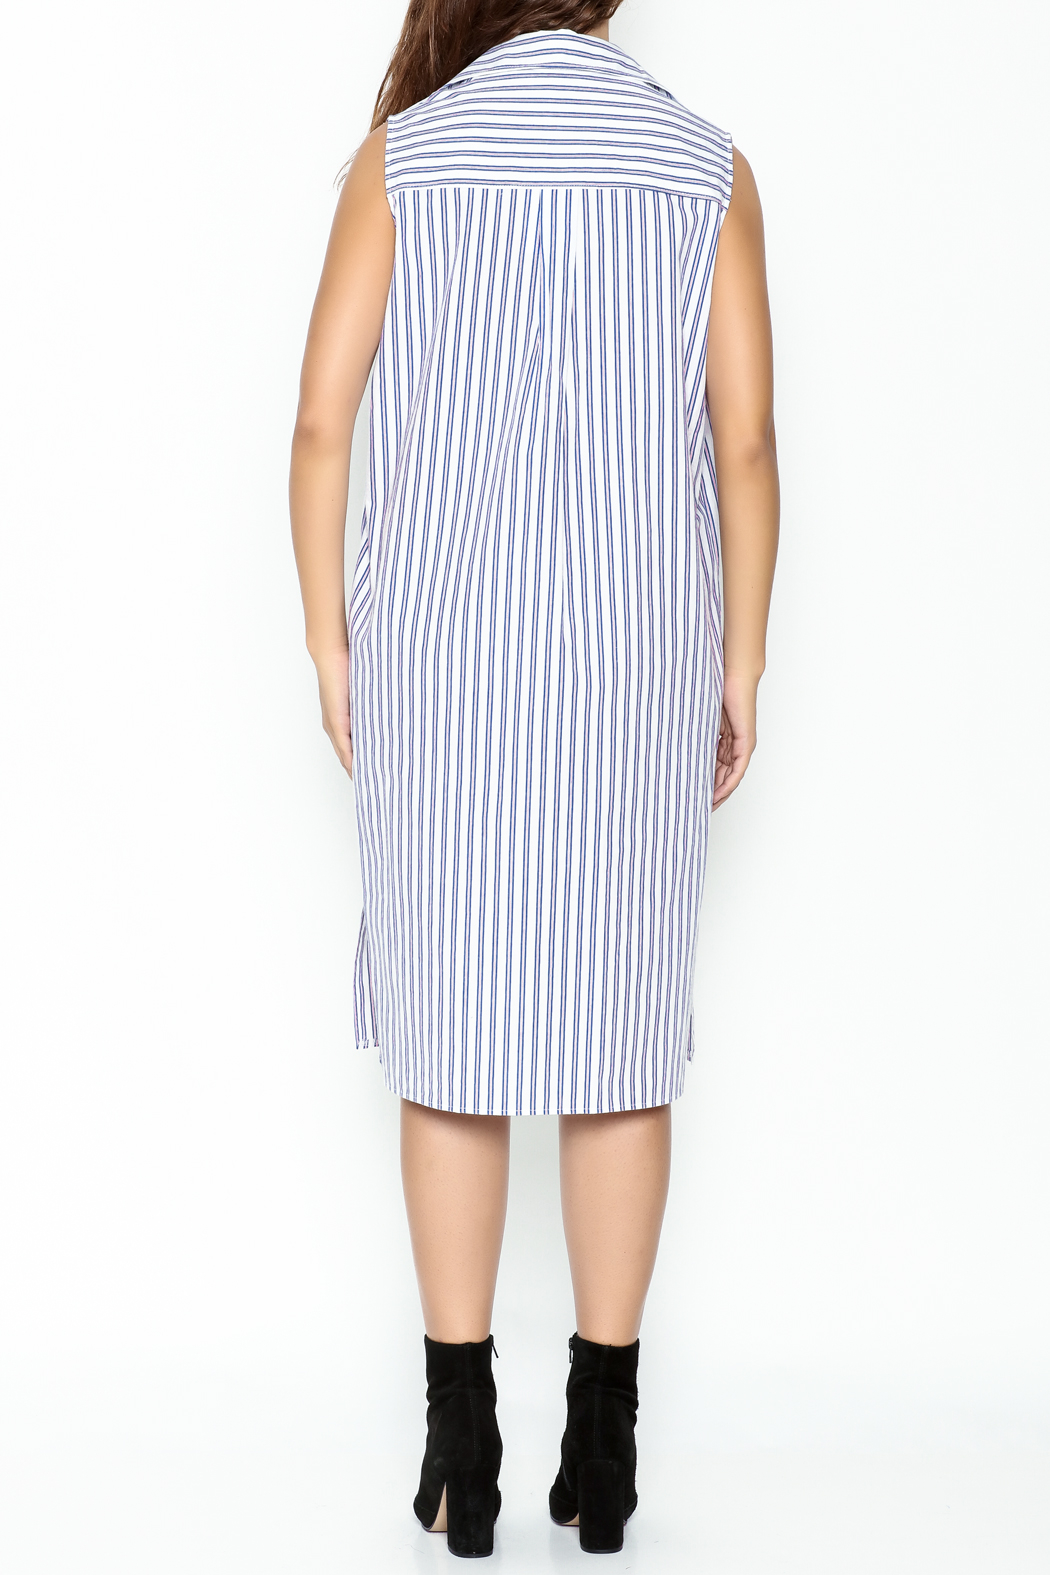 Pinkyotto Striped Boyfriend Shirt Dress - Back Cropped Image